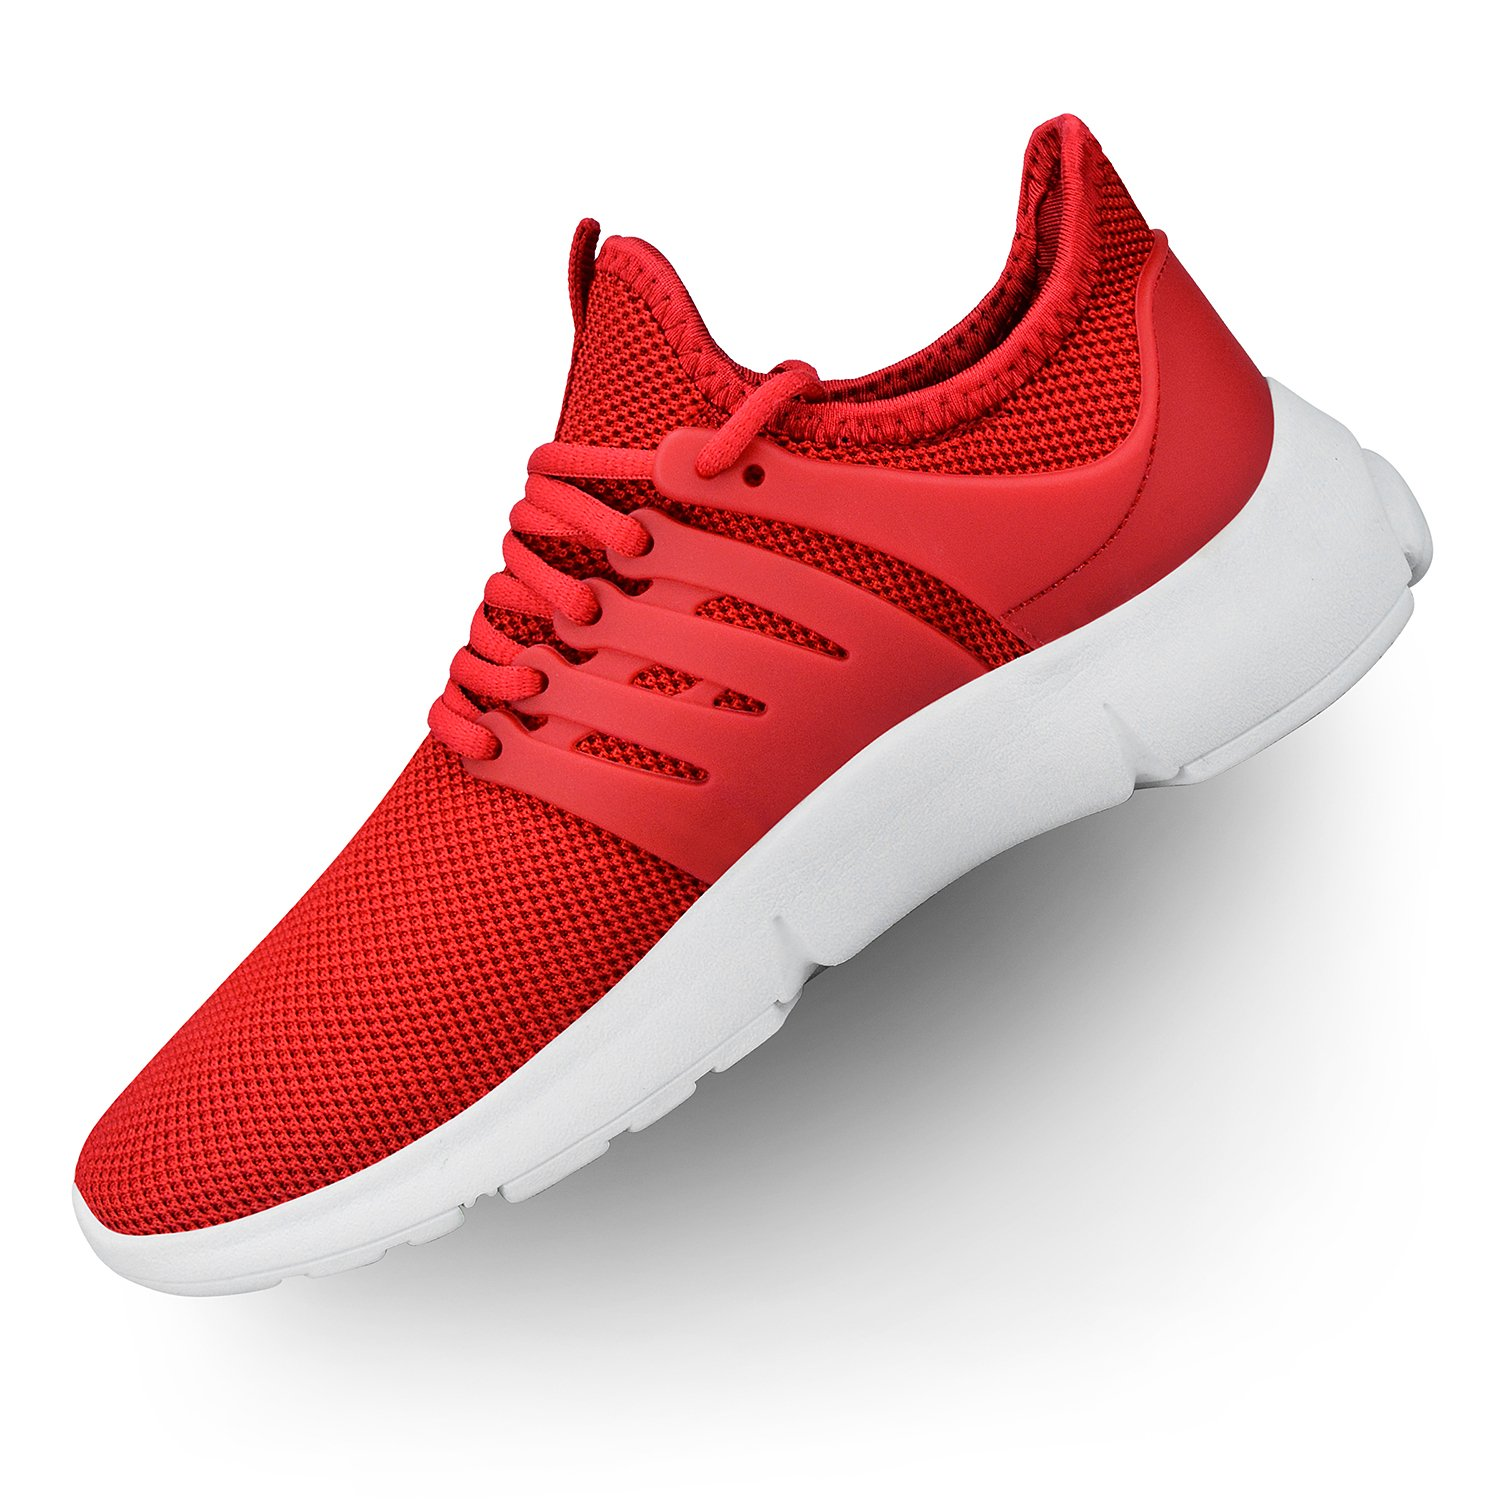 Red White Troadlop Womens Lightweight Athletic shoes Walking Sneakers